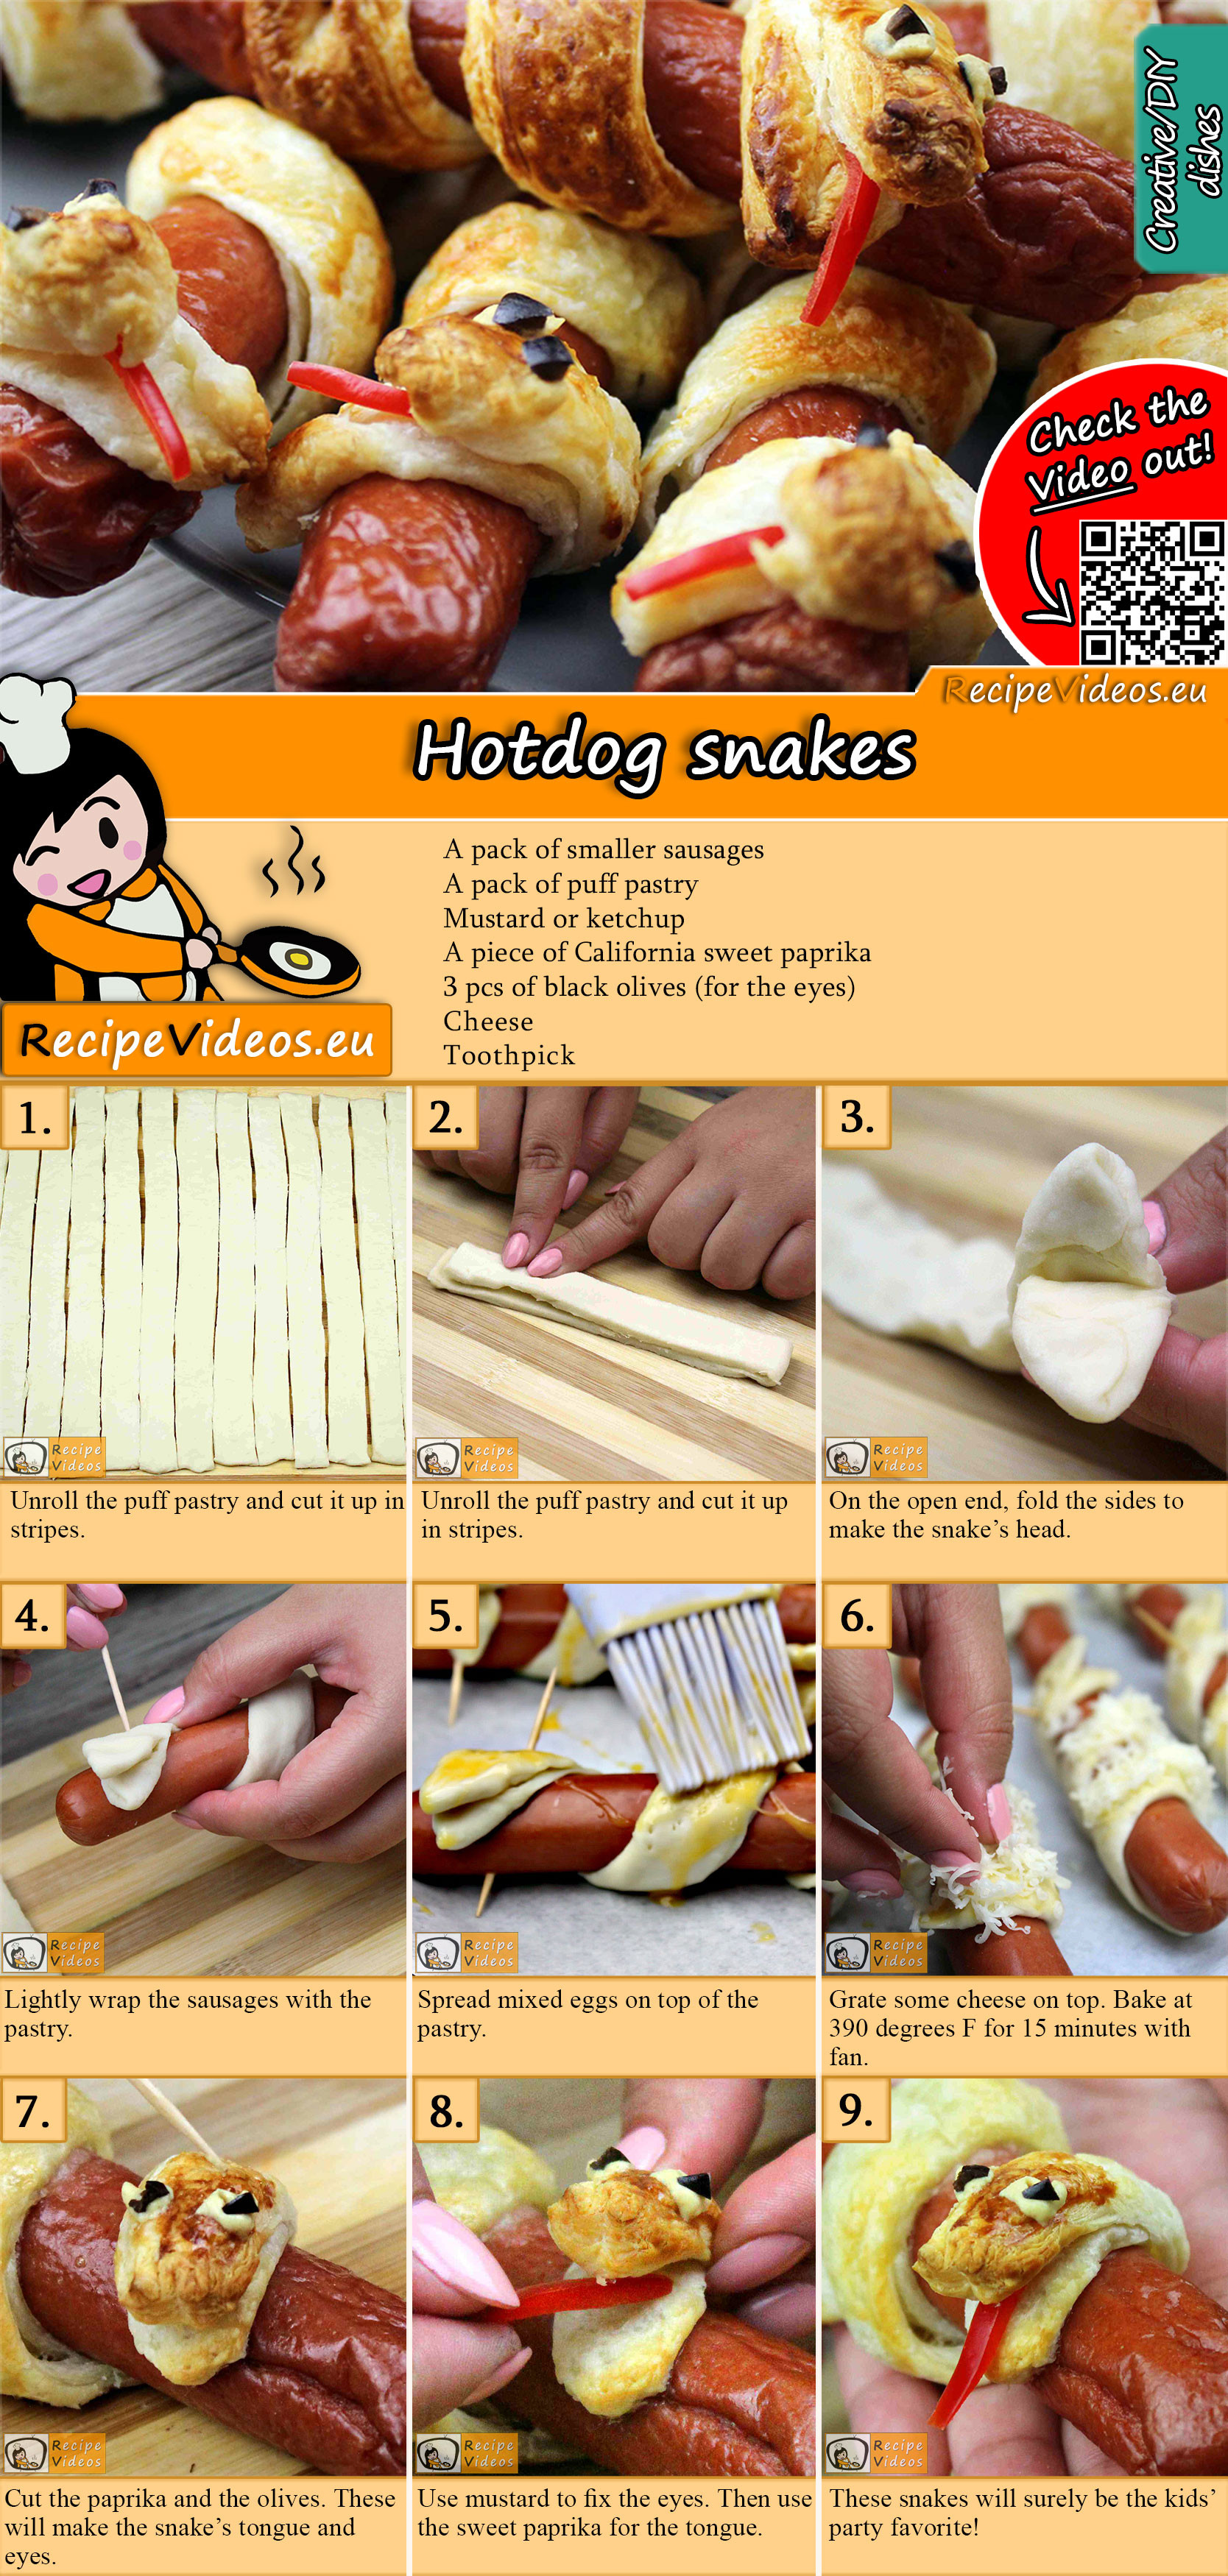 Hotdog snakes recipe with video